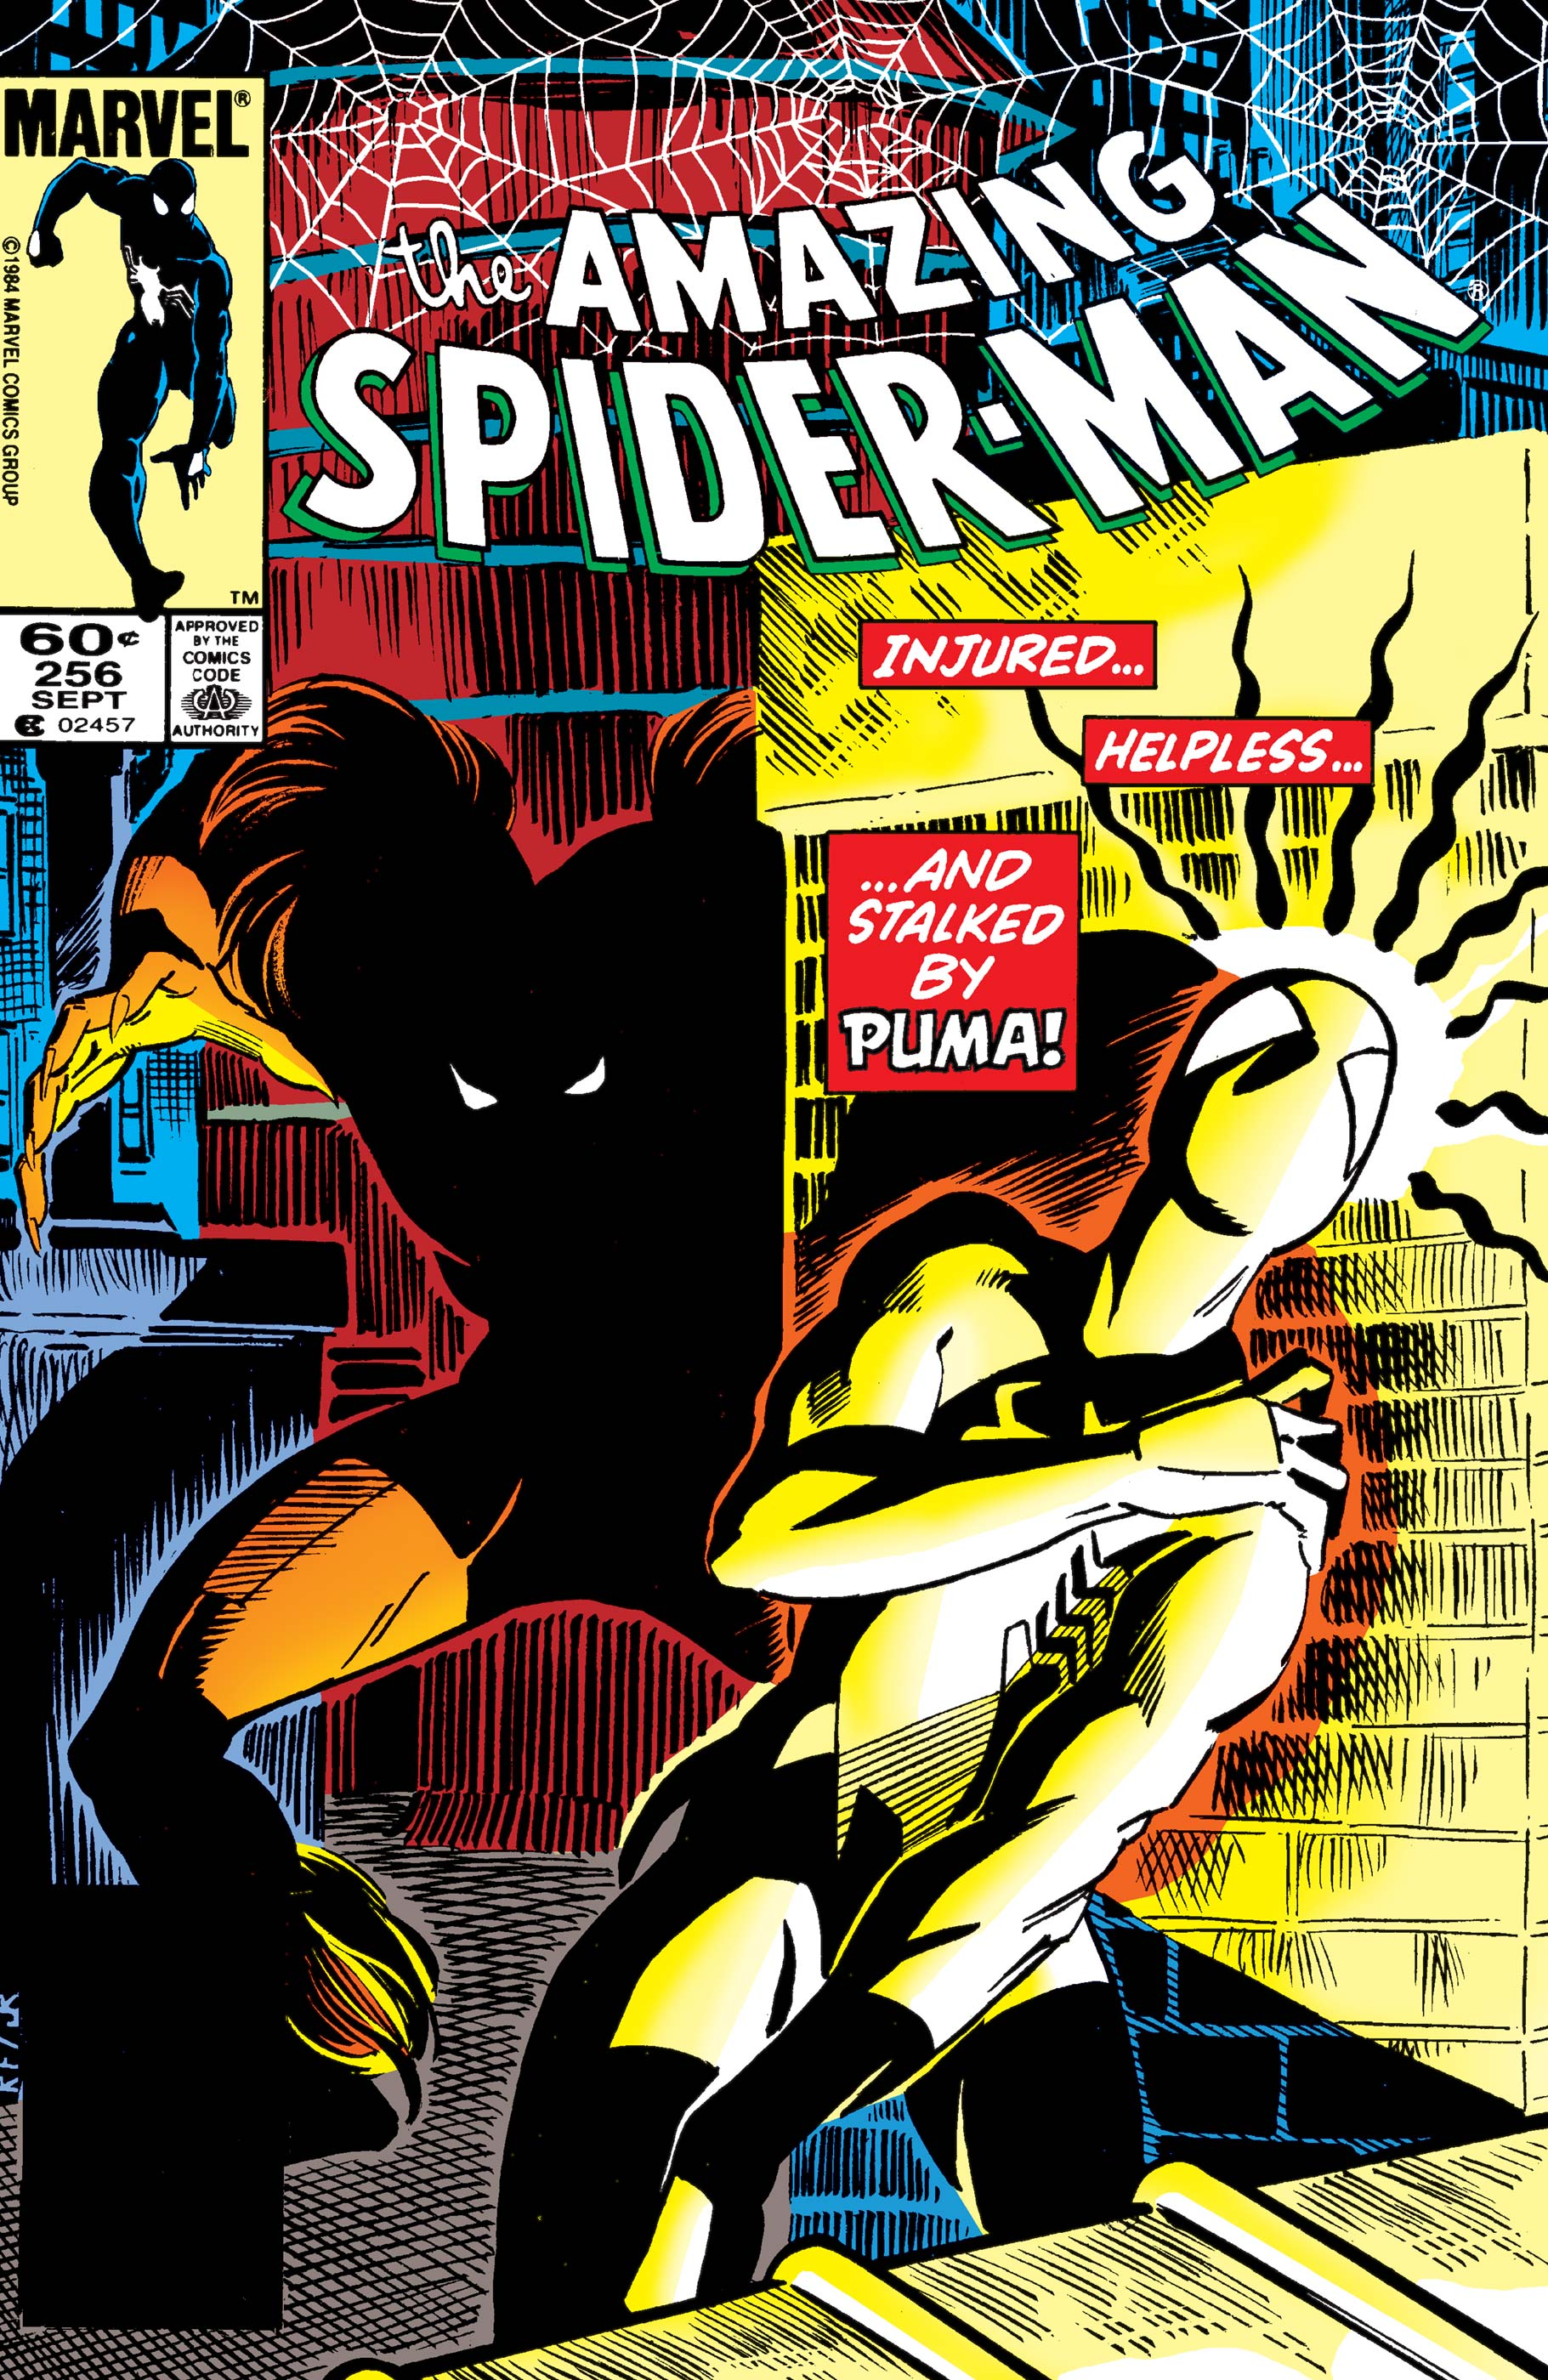 The Amazing Spider-Man (1963) #256